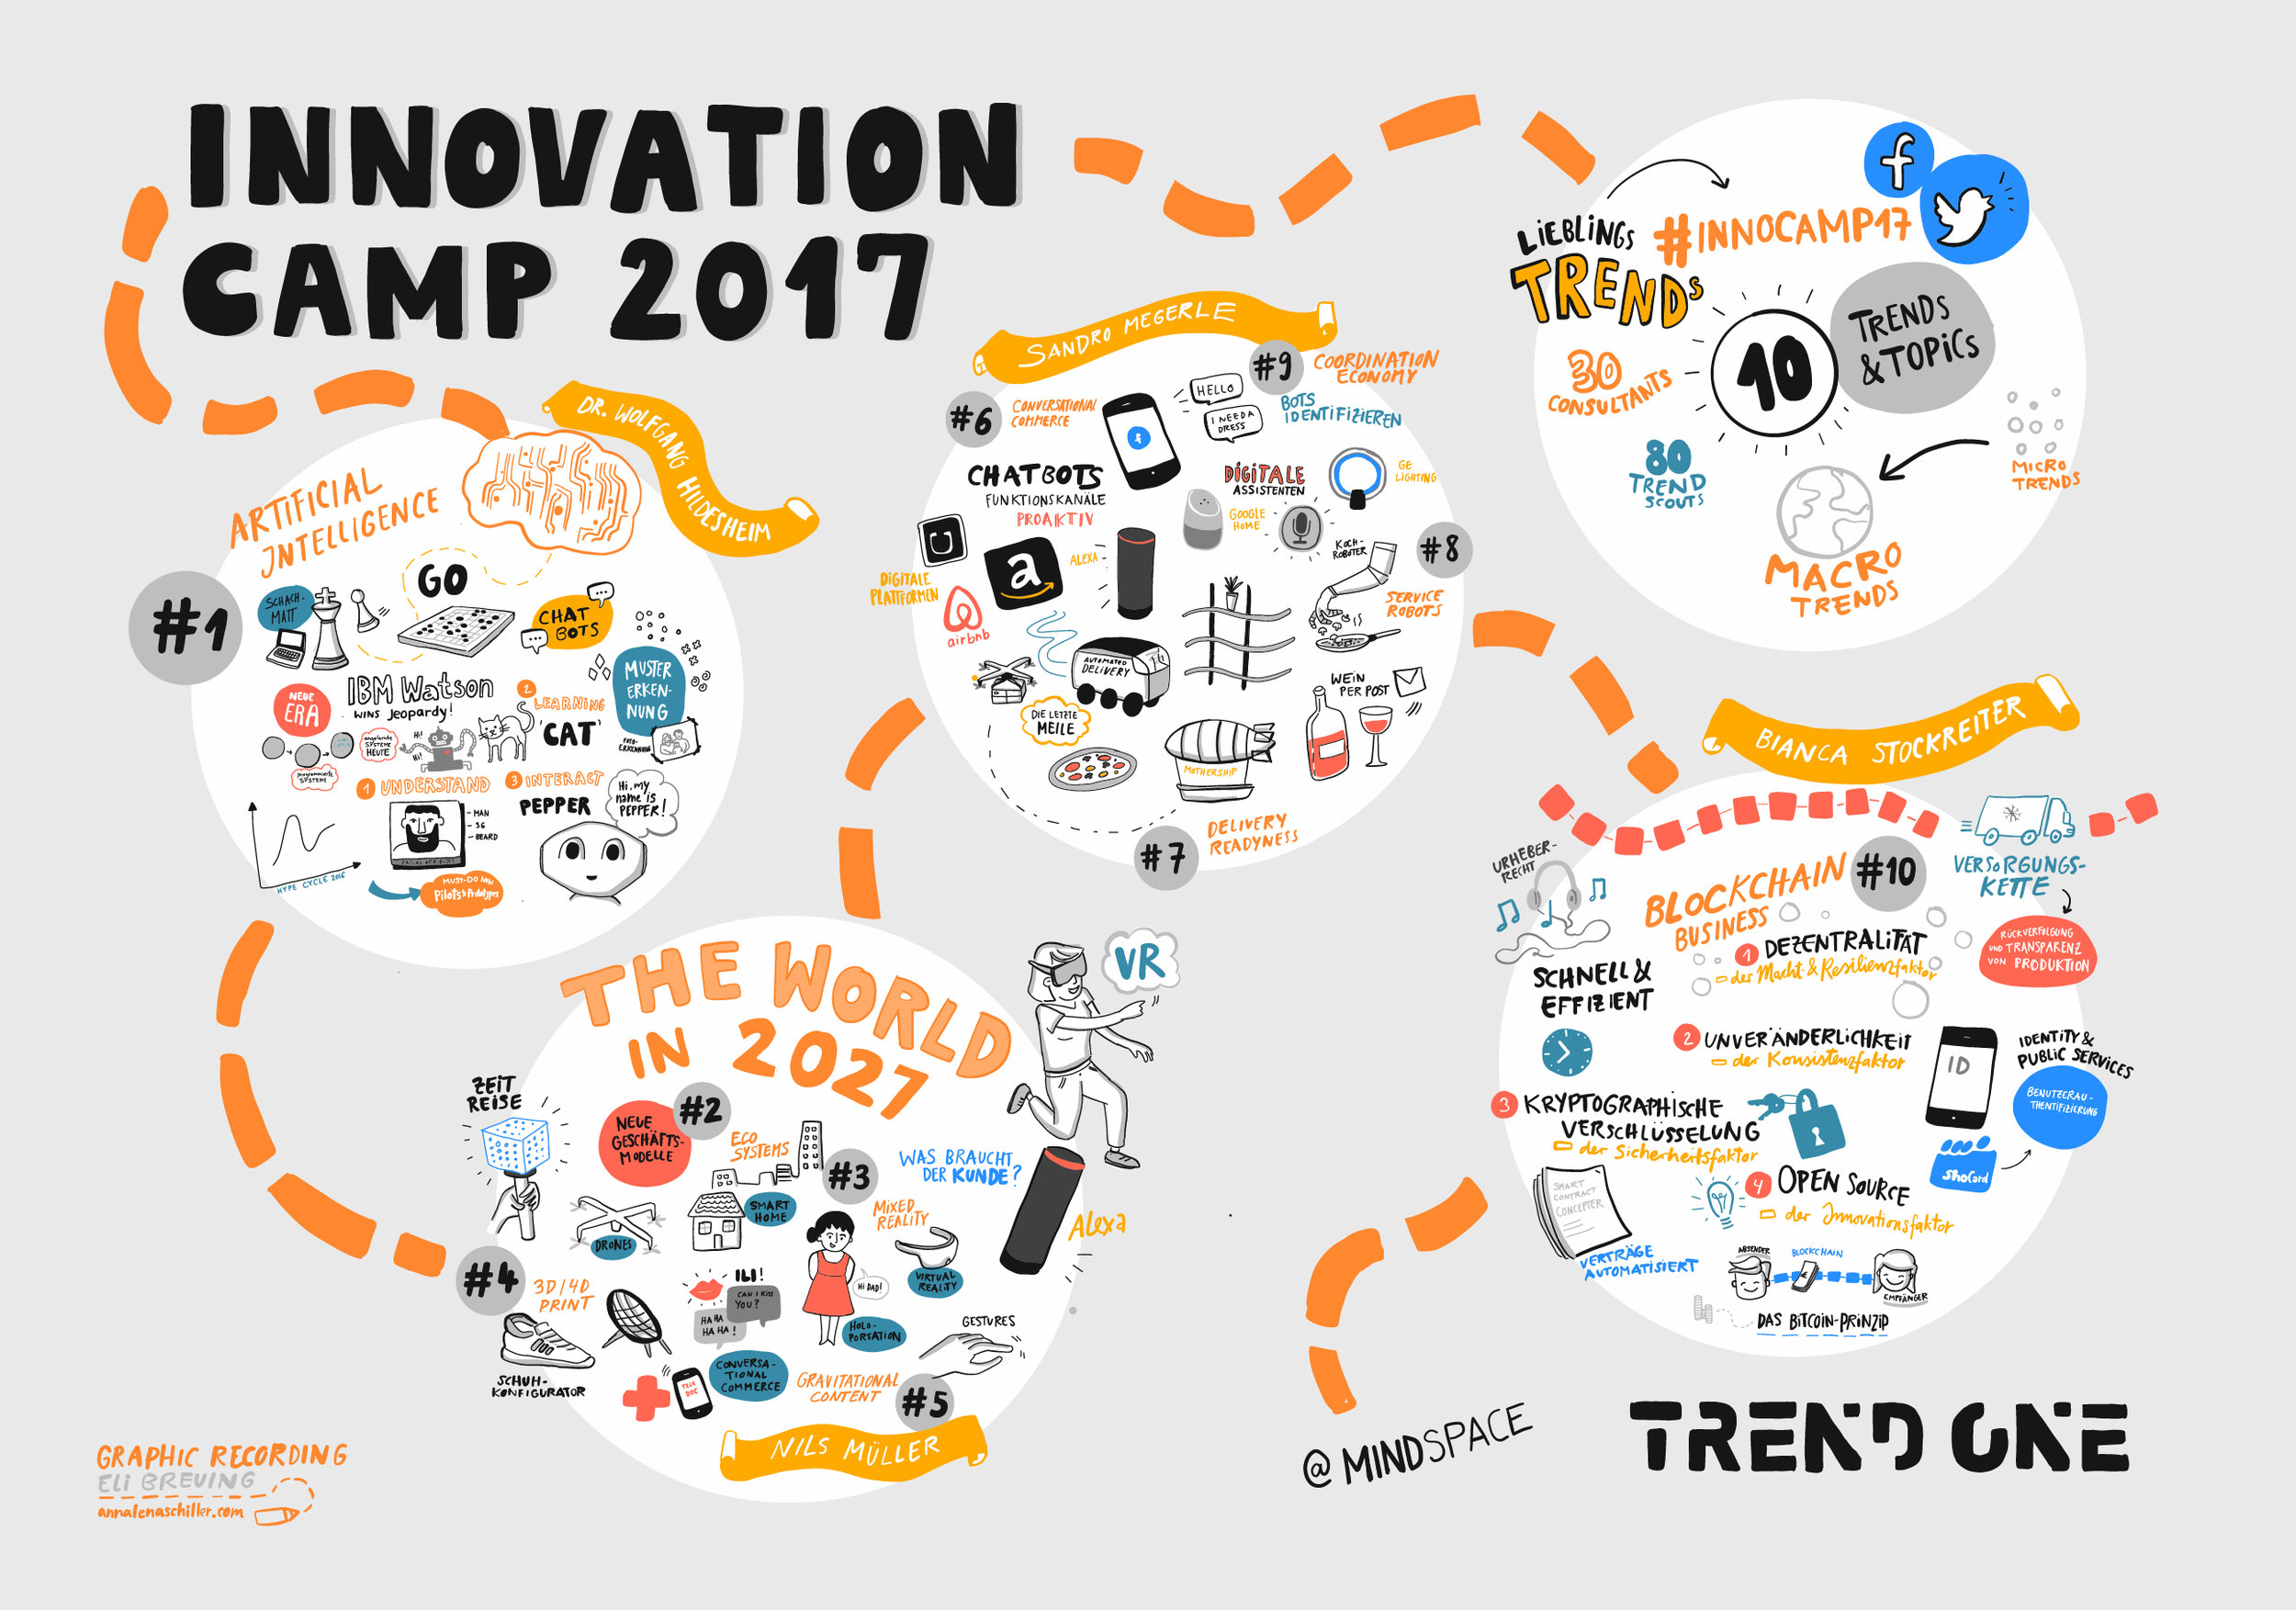 DGR_Trendone_Innovationcamp_2017_Teil1.jpg